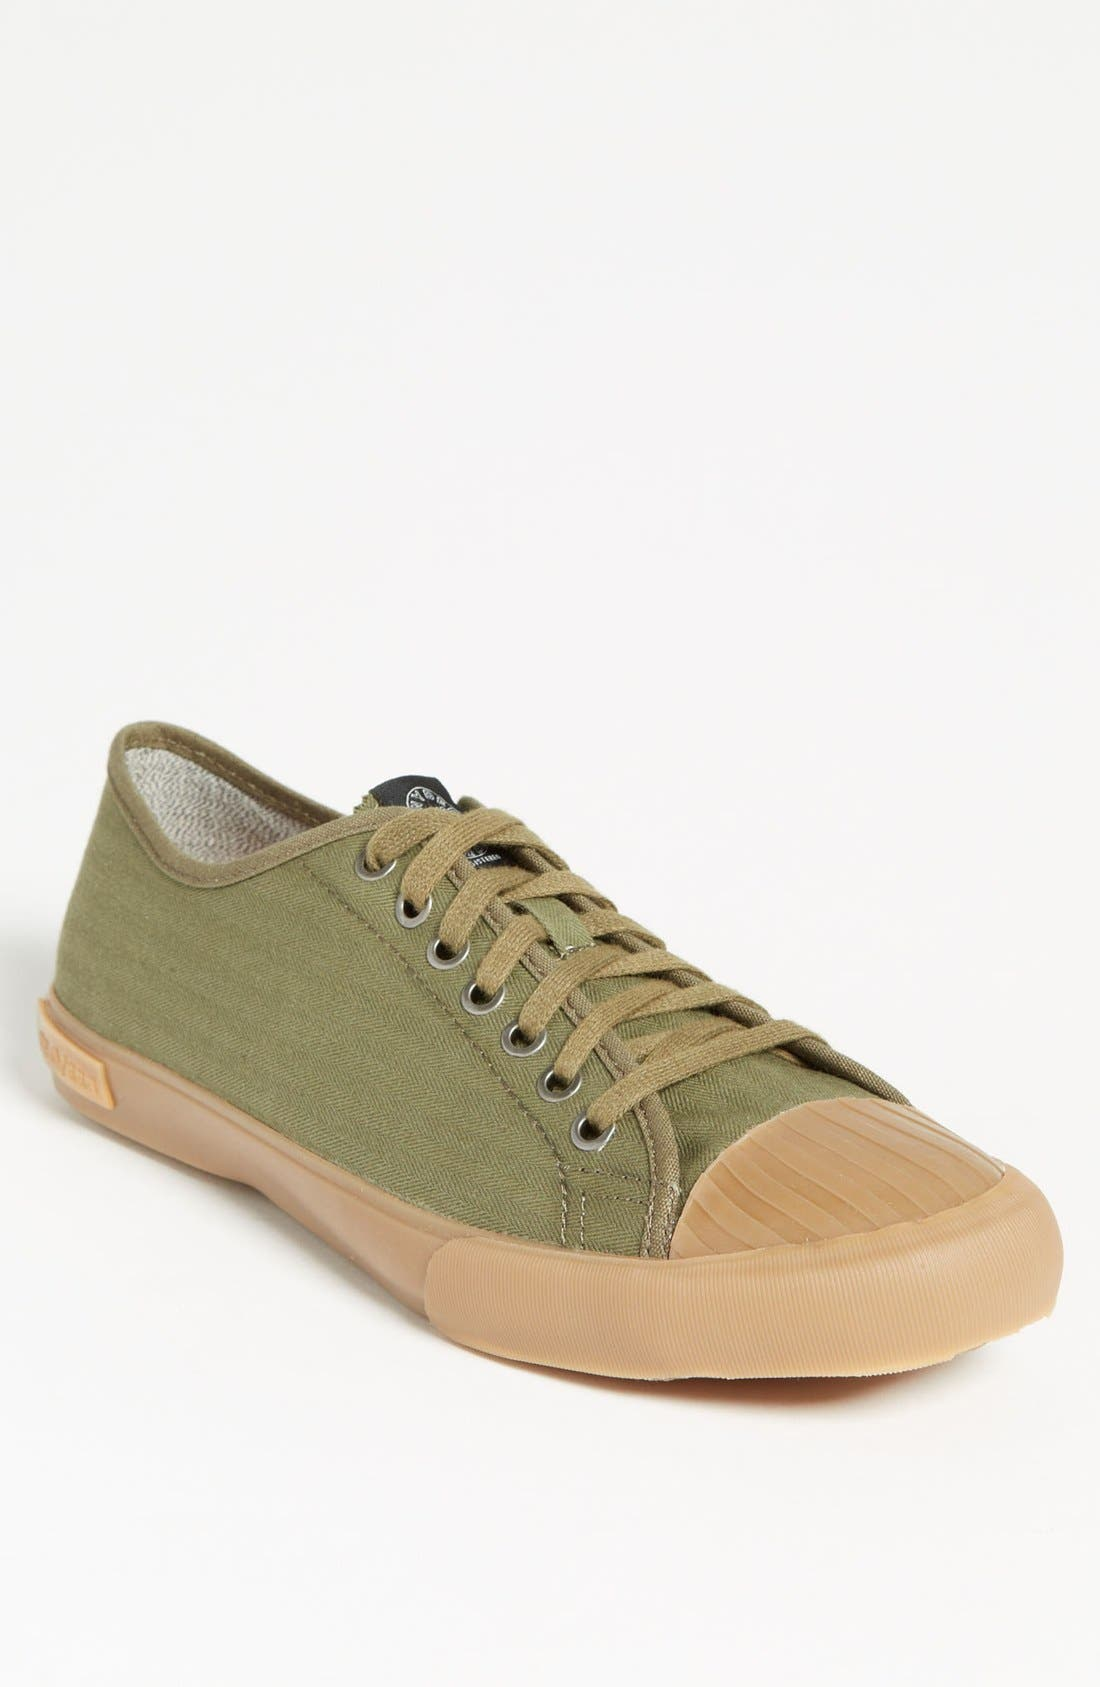 Main Image - SeaVees '08/61 Army Issue' Low Sneaker